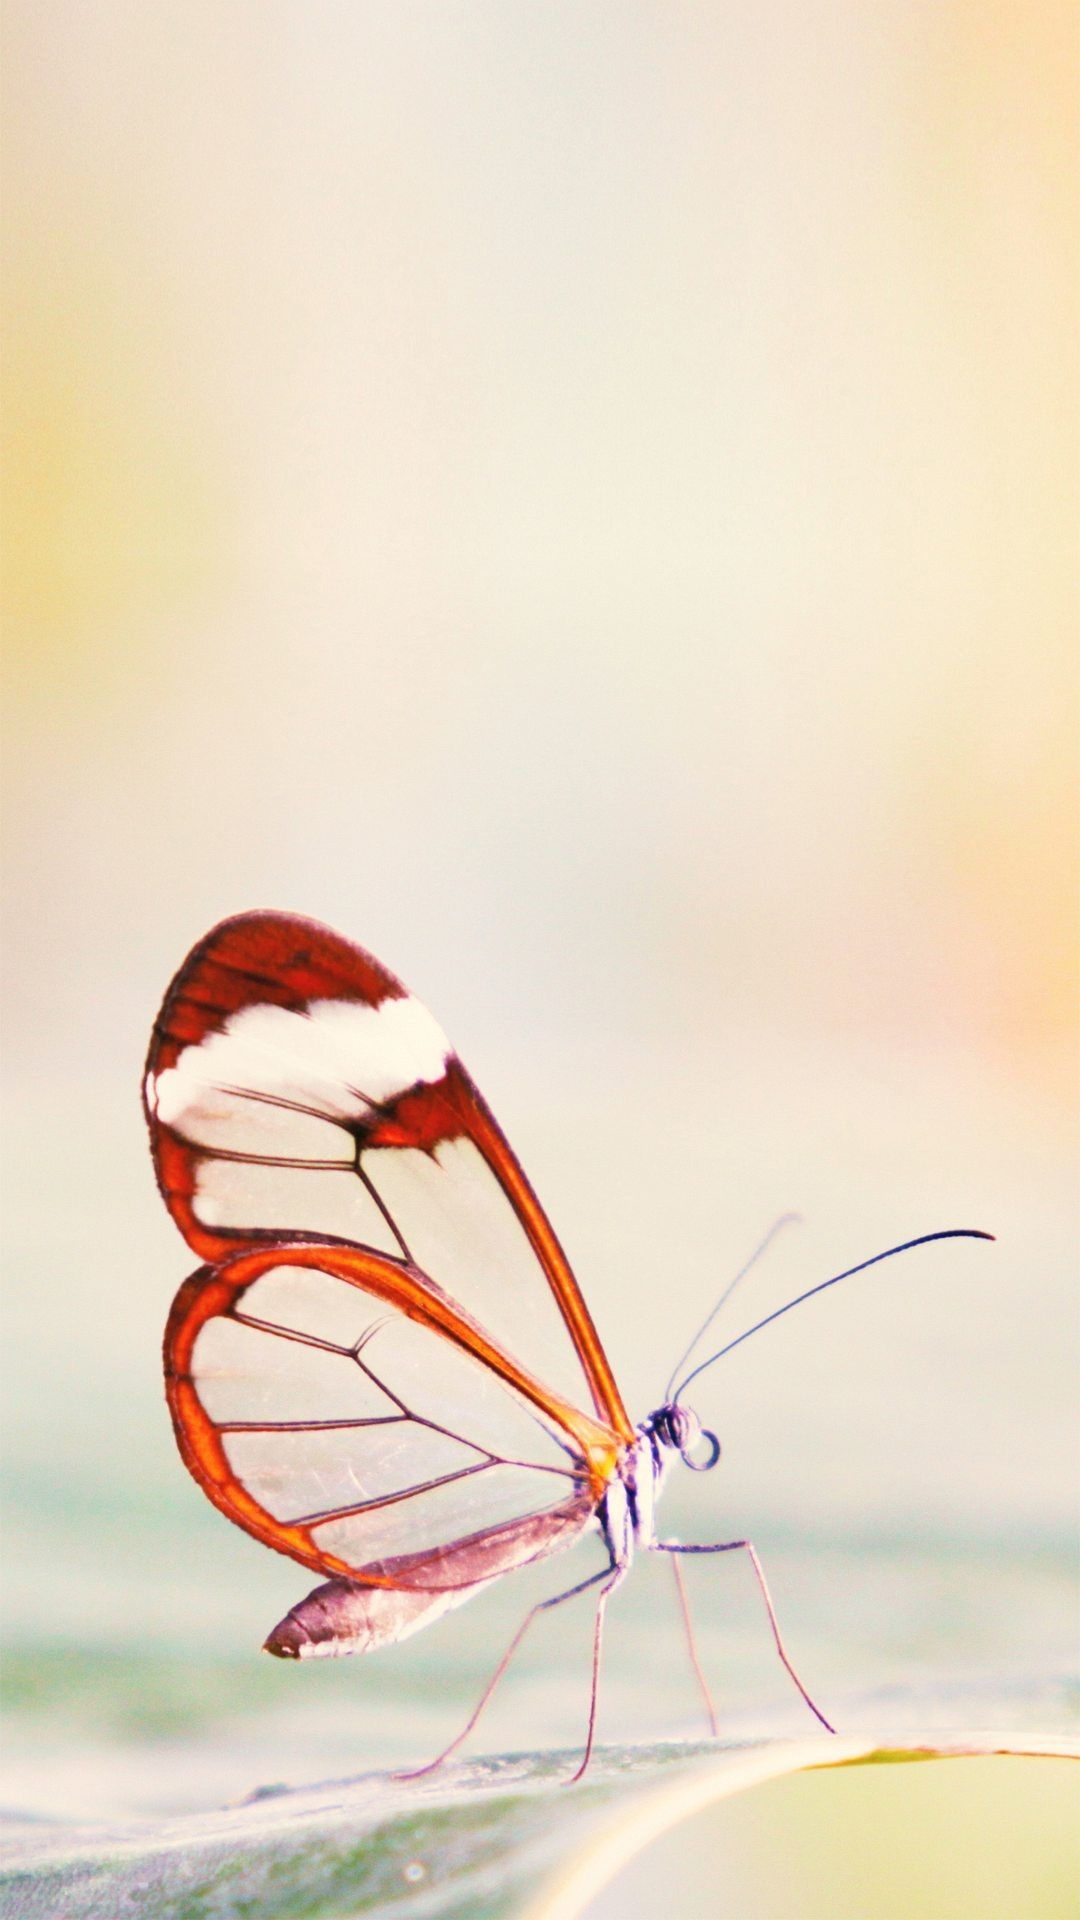 Butterfly hd wallpaper for Android